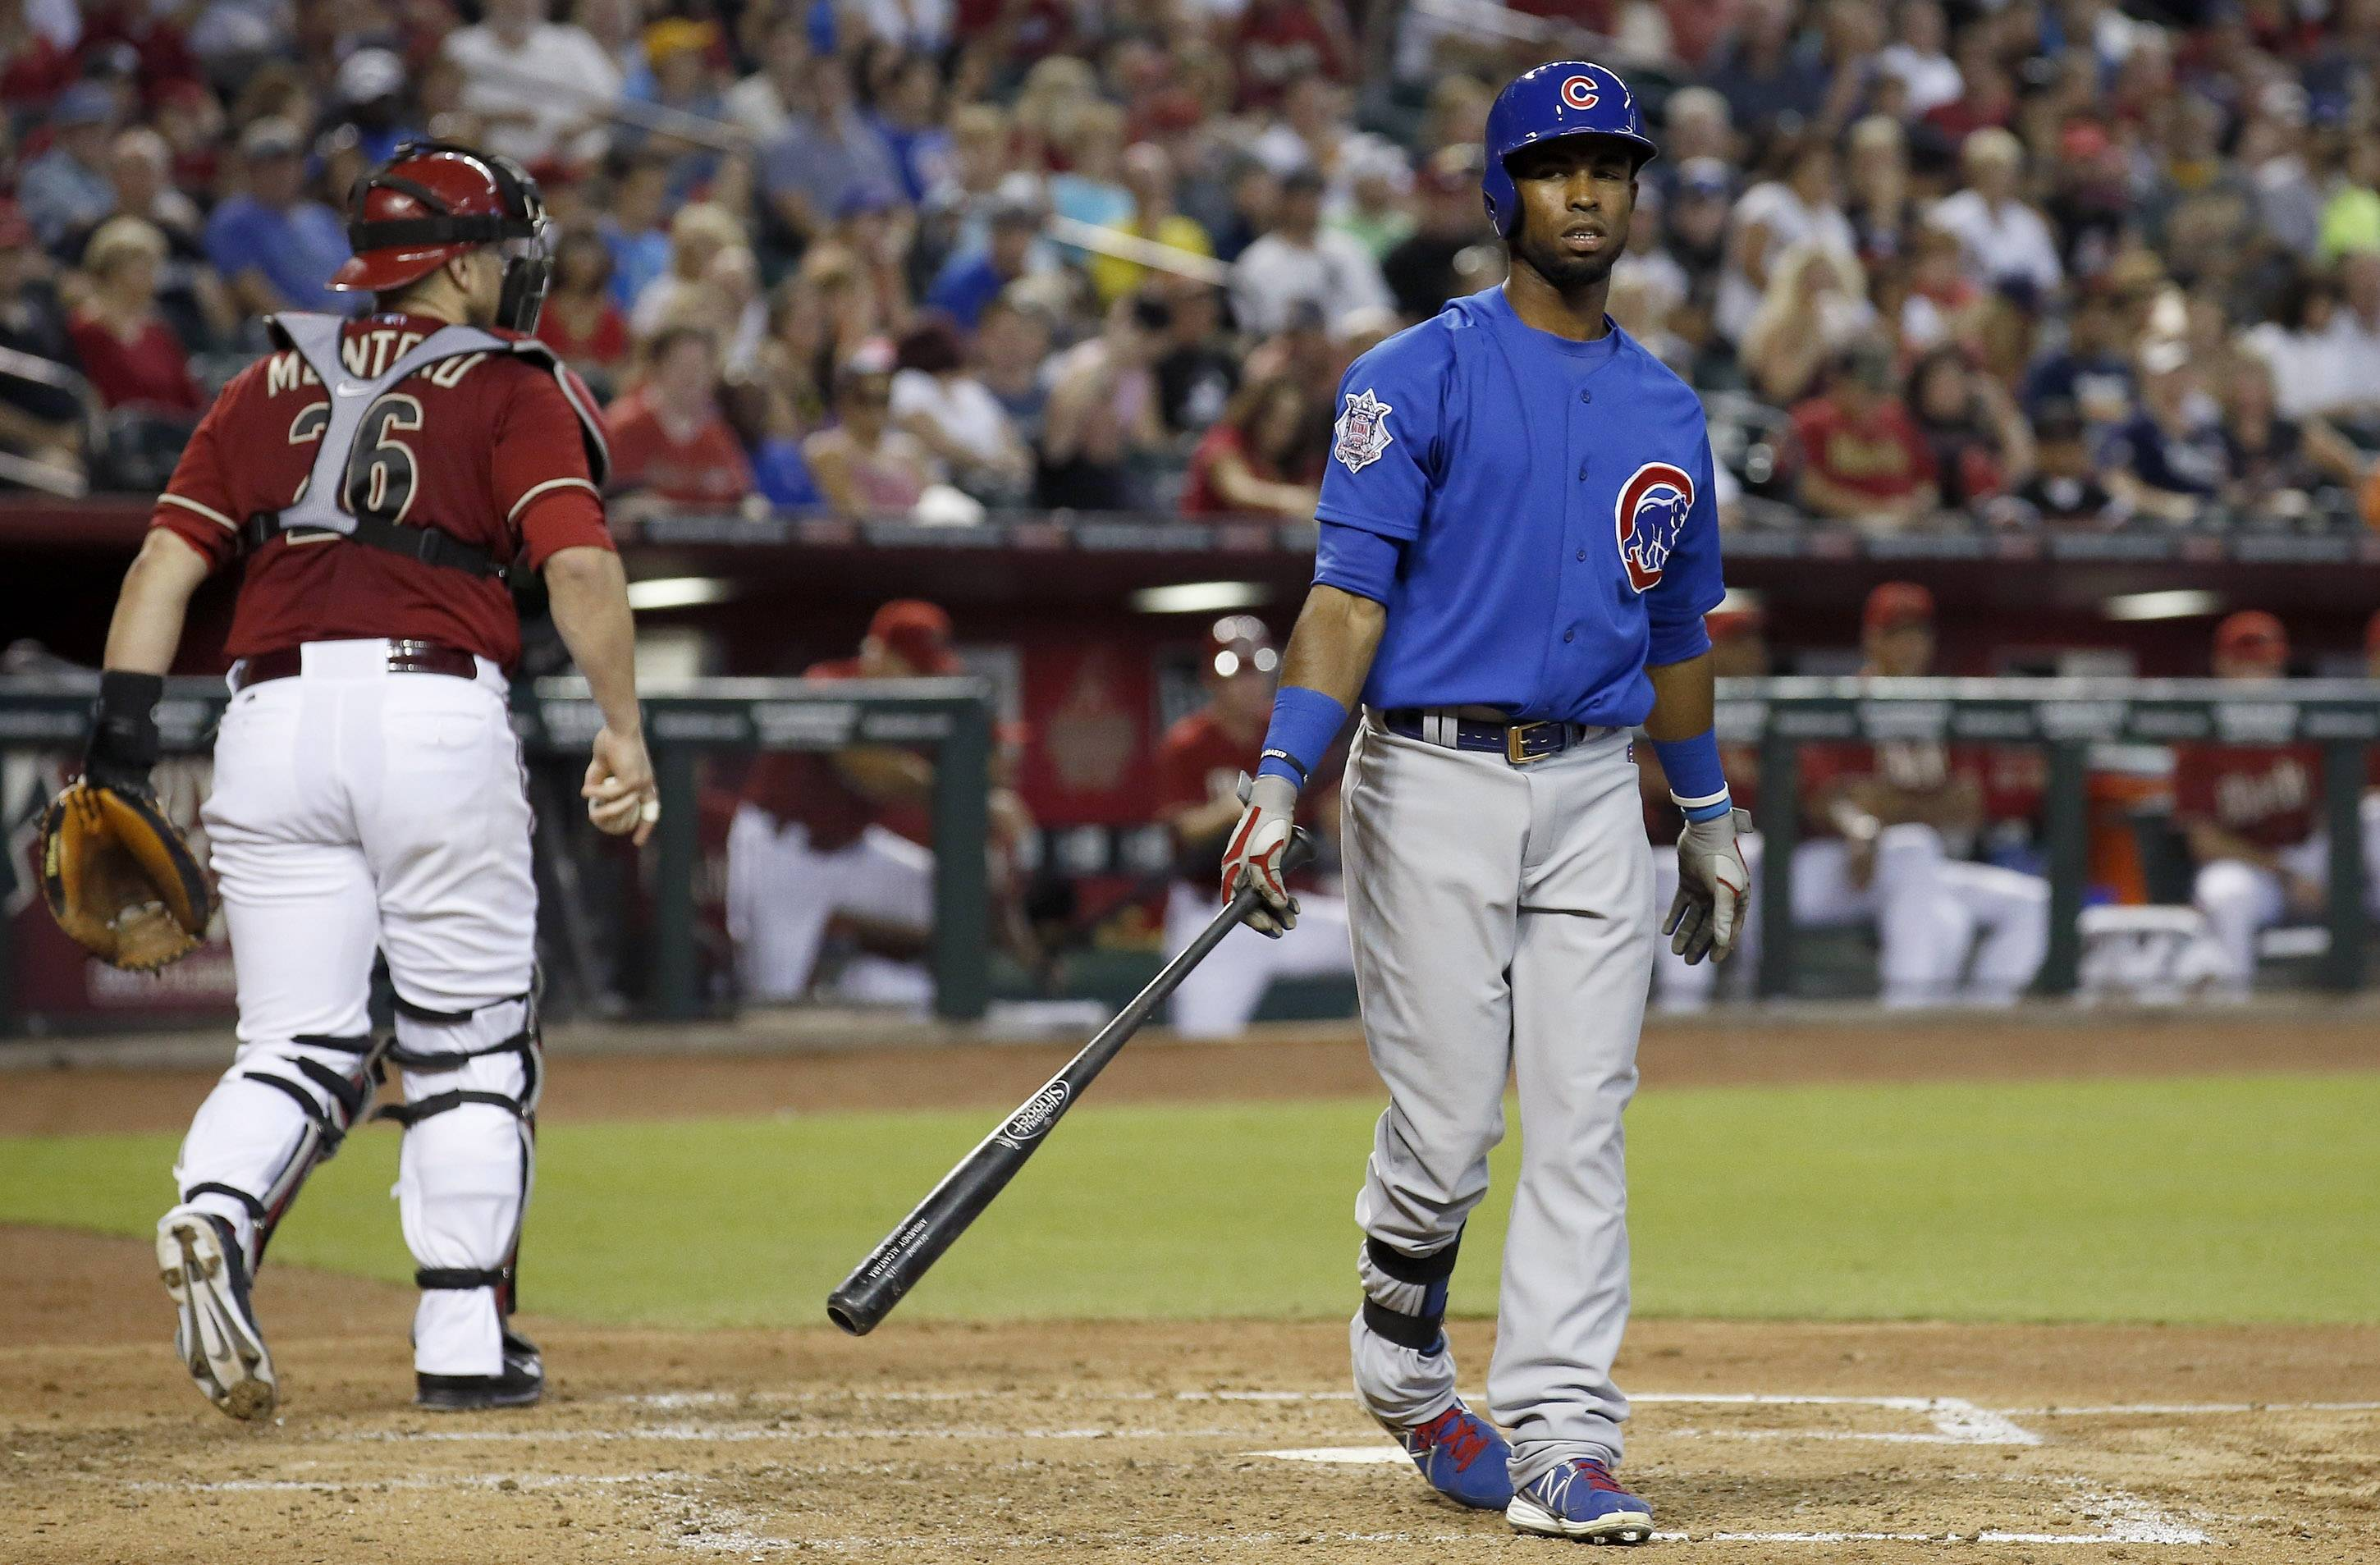 The Cubs' Arismendy Alcantara walks back to the dugout after striking out in the third inning Sunday in Arizona.